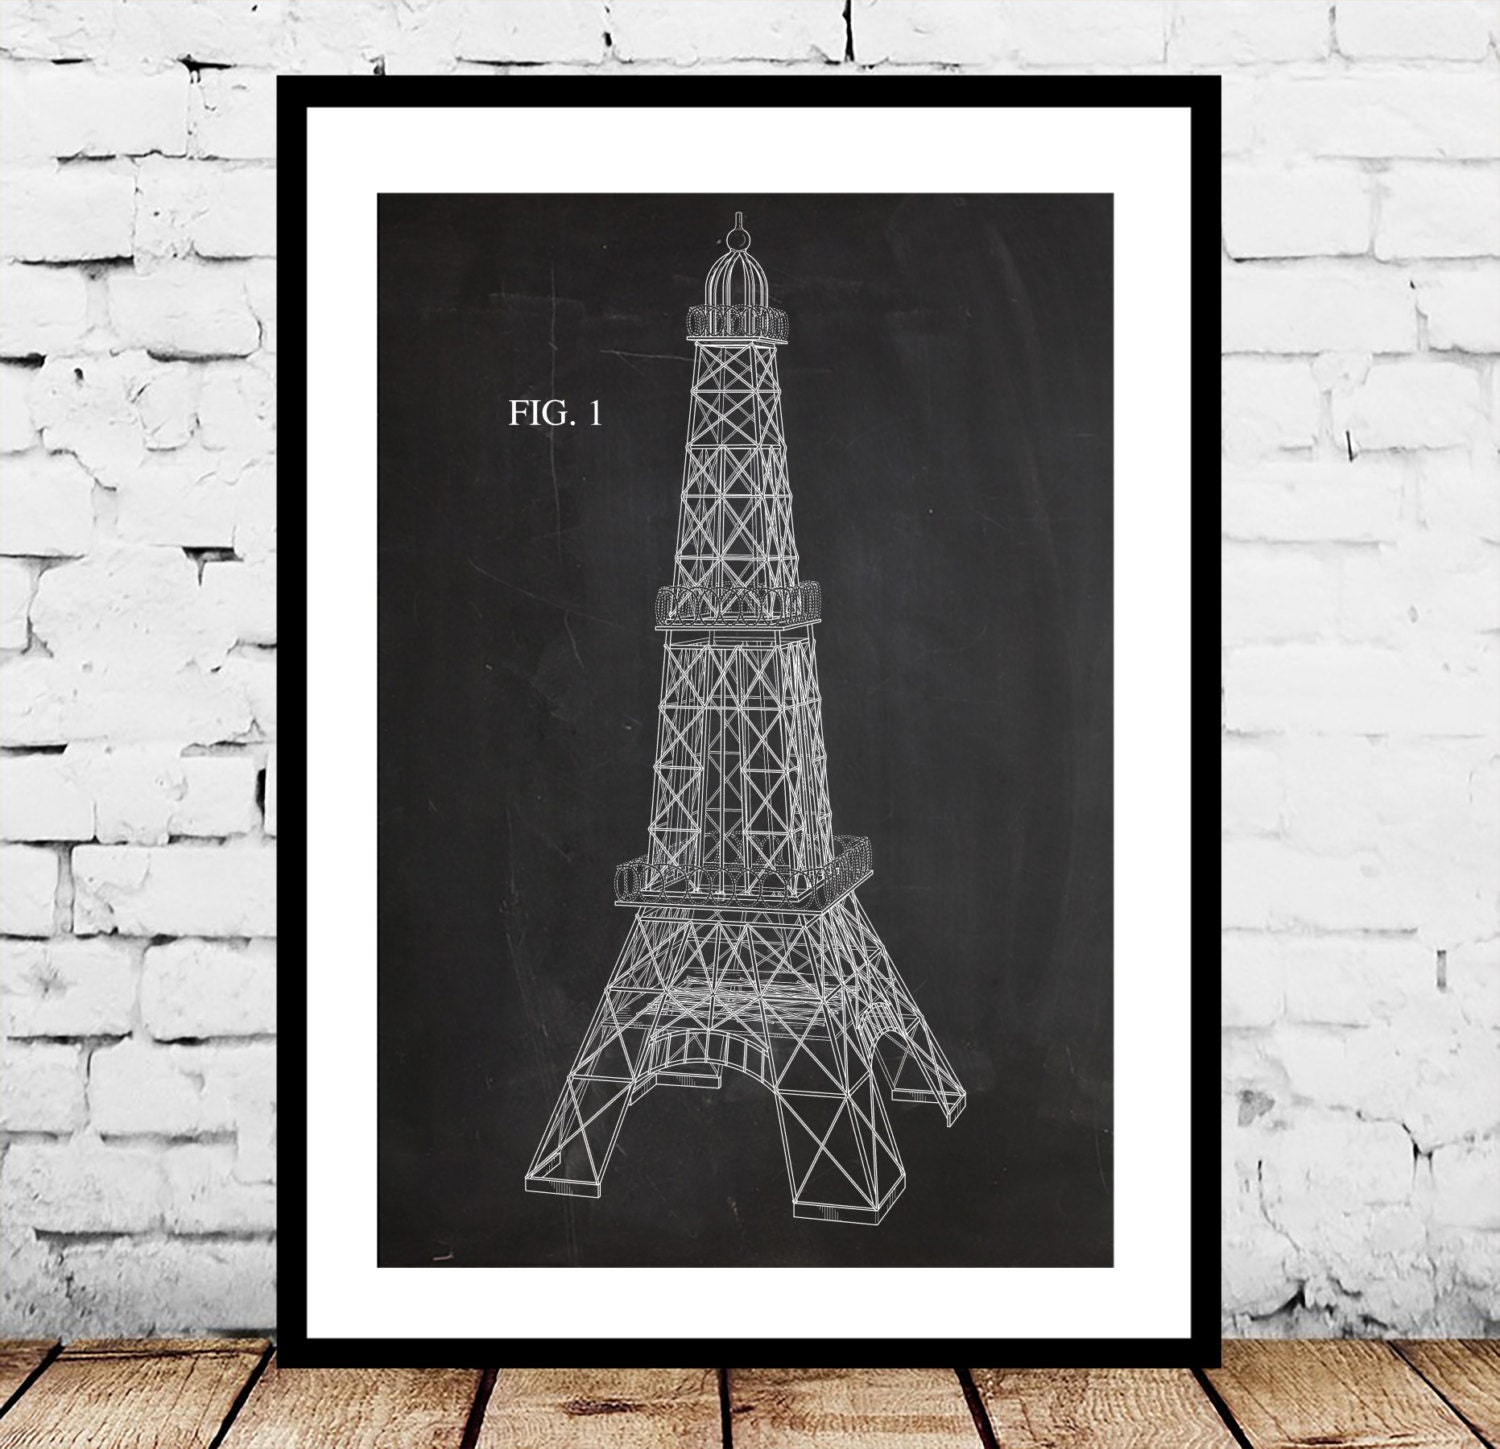 Eiffel tower patent eiffel tower poster eiffel tower blueprint eiffel tower patent eiffel tower poster eiffel tower blueprint eiffel tower print eiffel tower art eiffel tower decor p104 jeuxipadfo Images